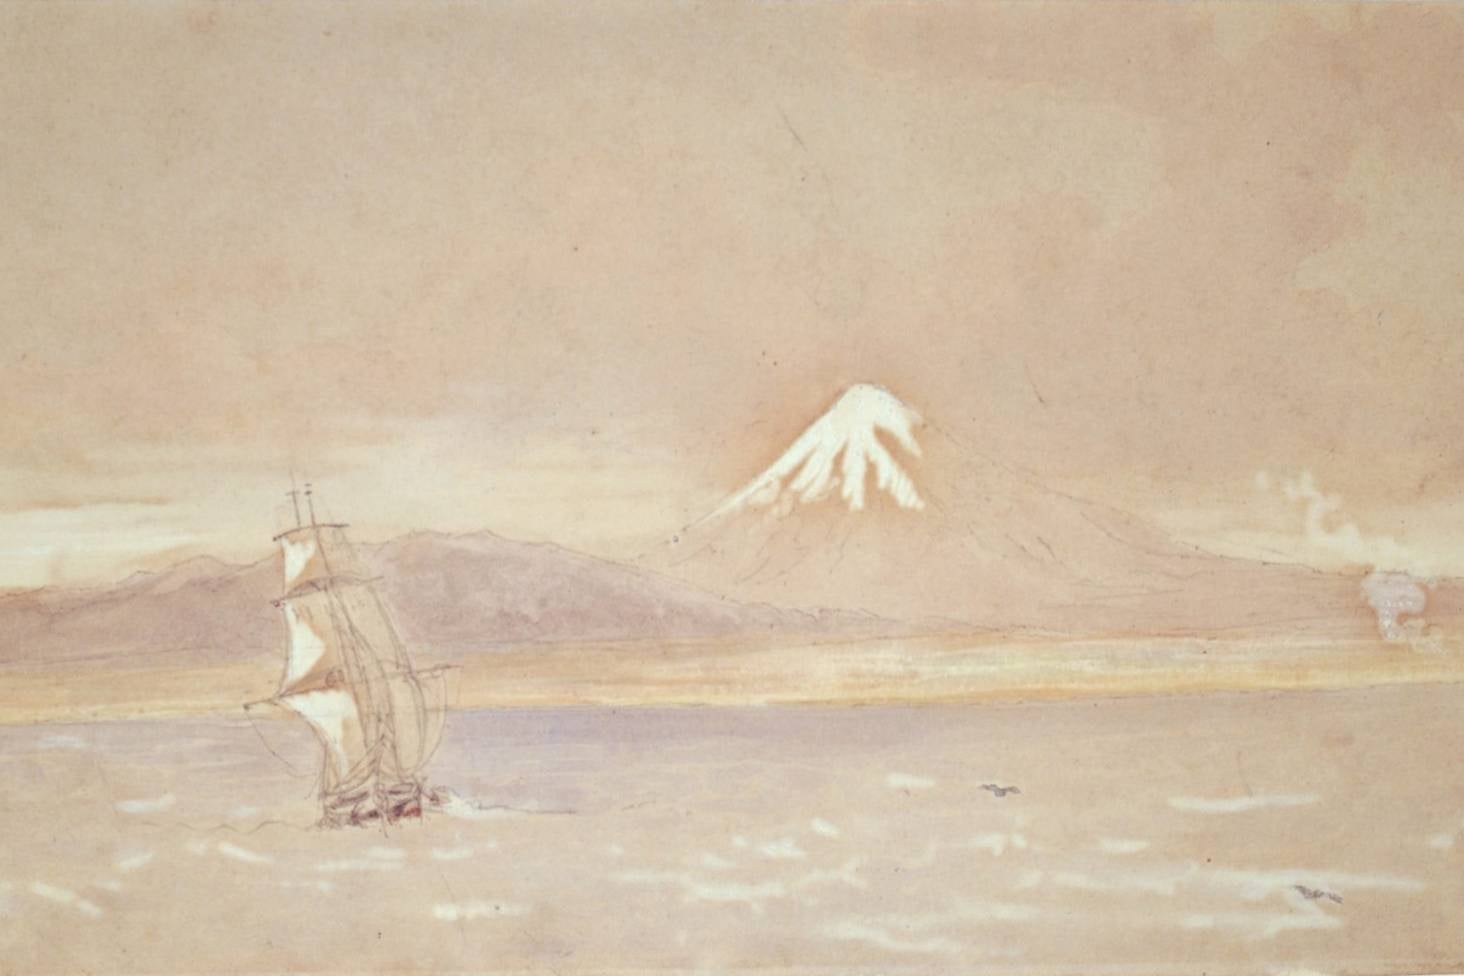 Arrival of The William Bryan by Edwin Harris -Puke Ariki collection